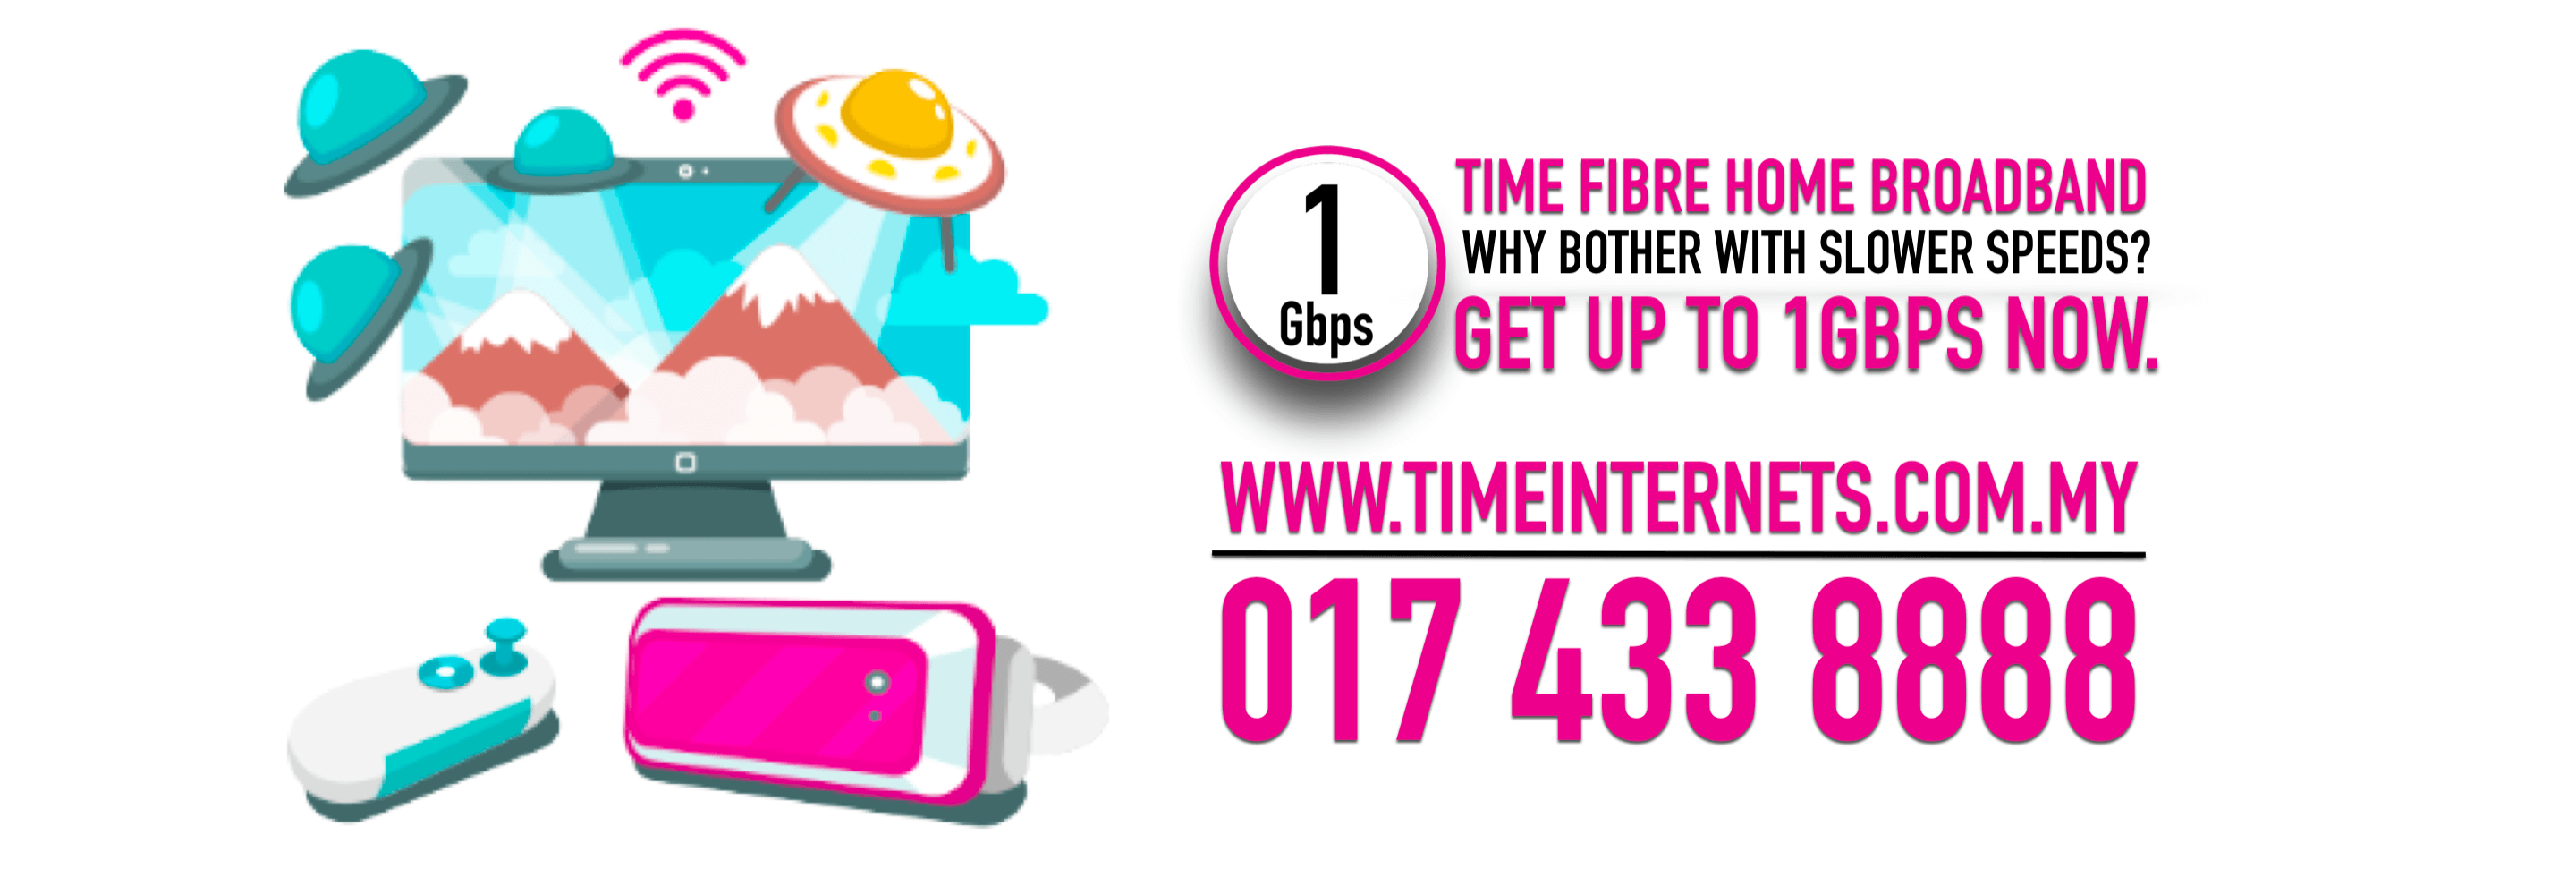 Time Fibrenation wifi router